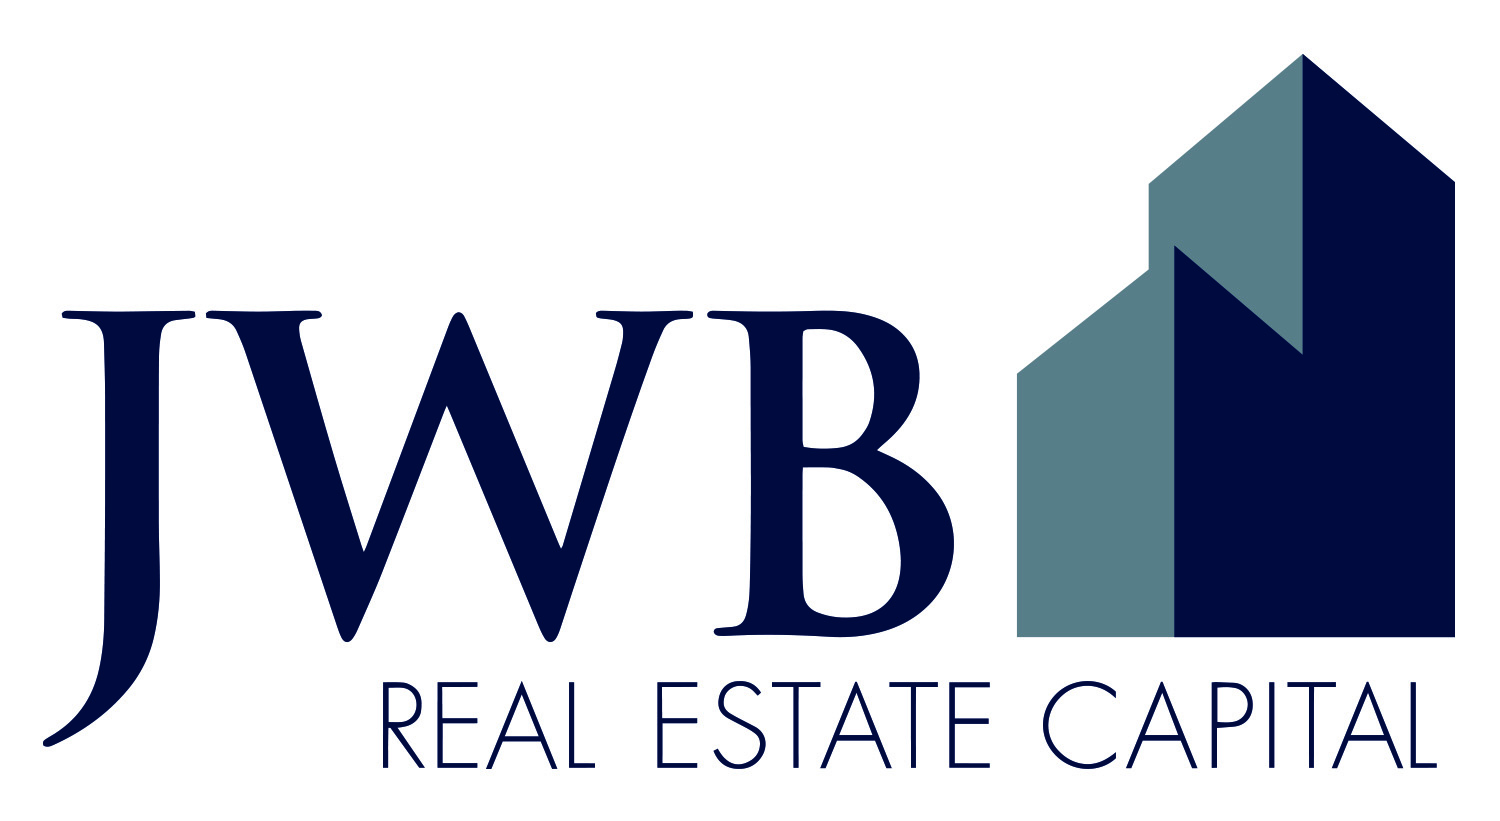 JWB_Real_Estate_Capital.jpg